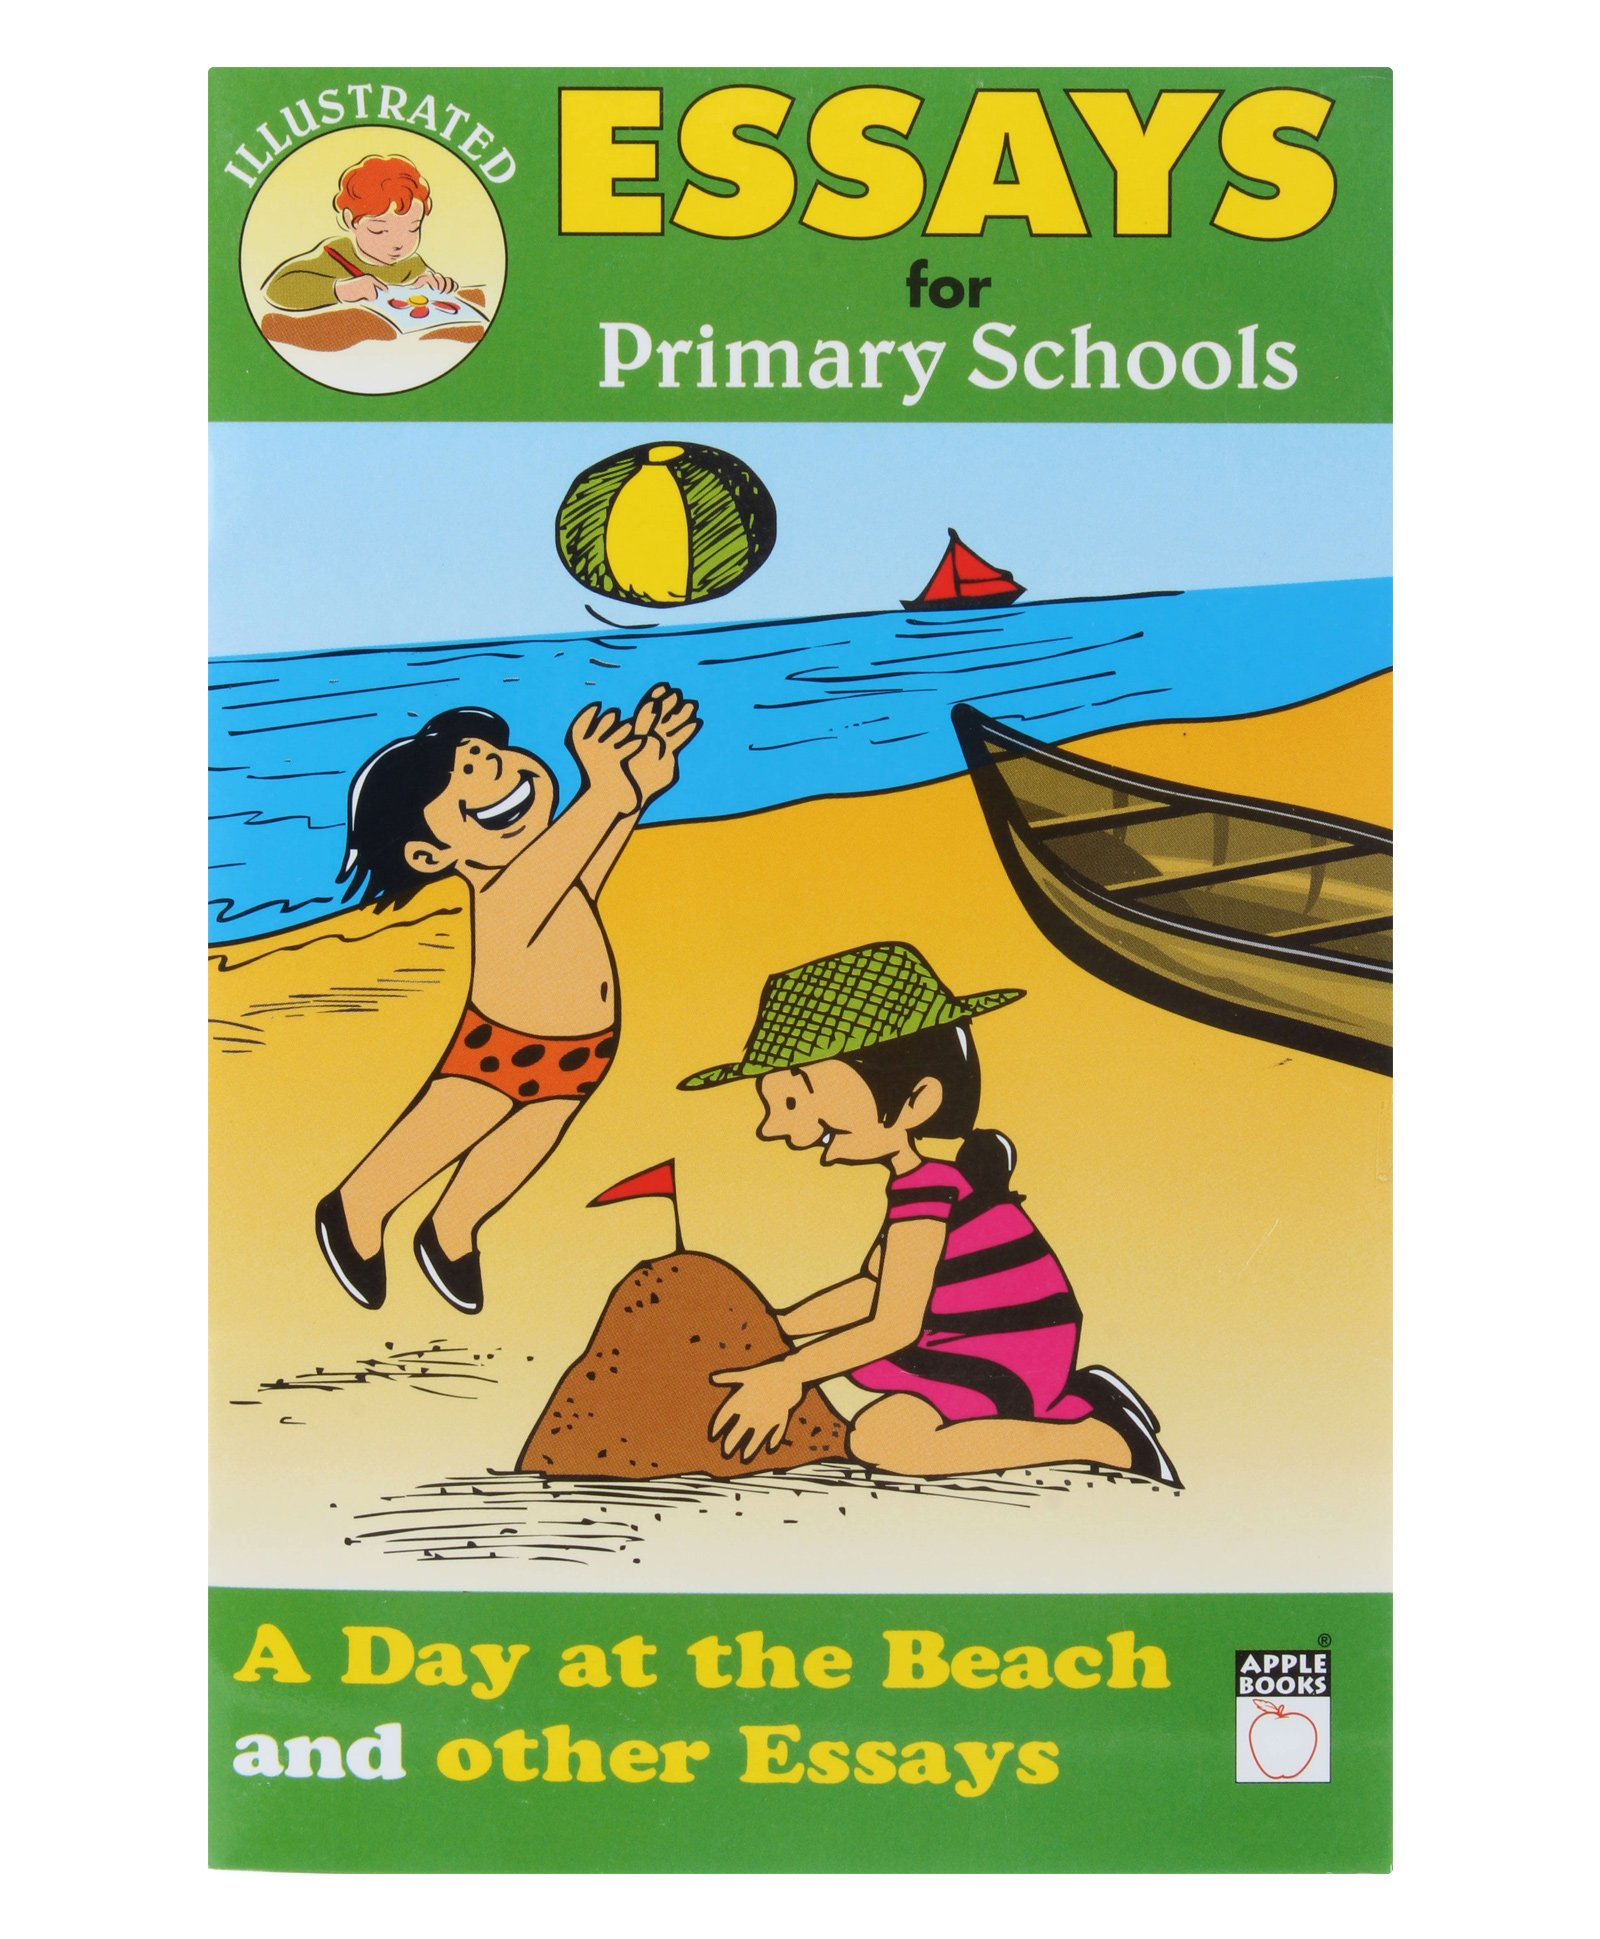 a day at the beach essay essay